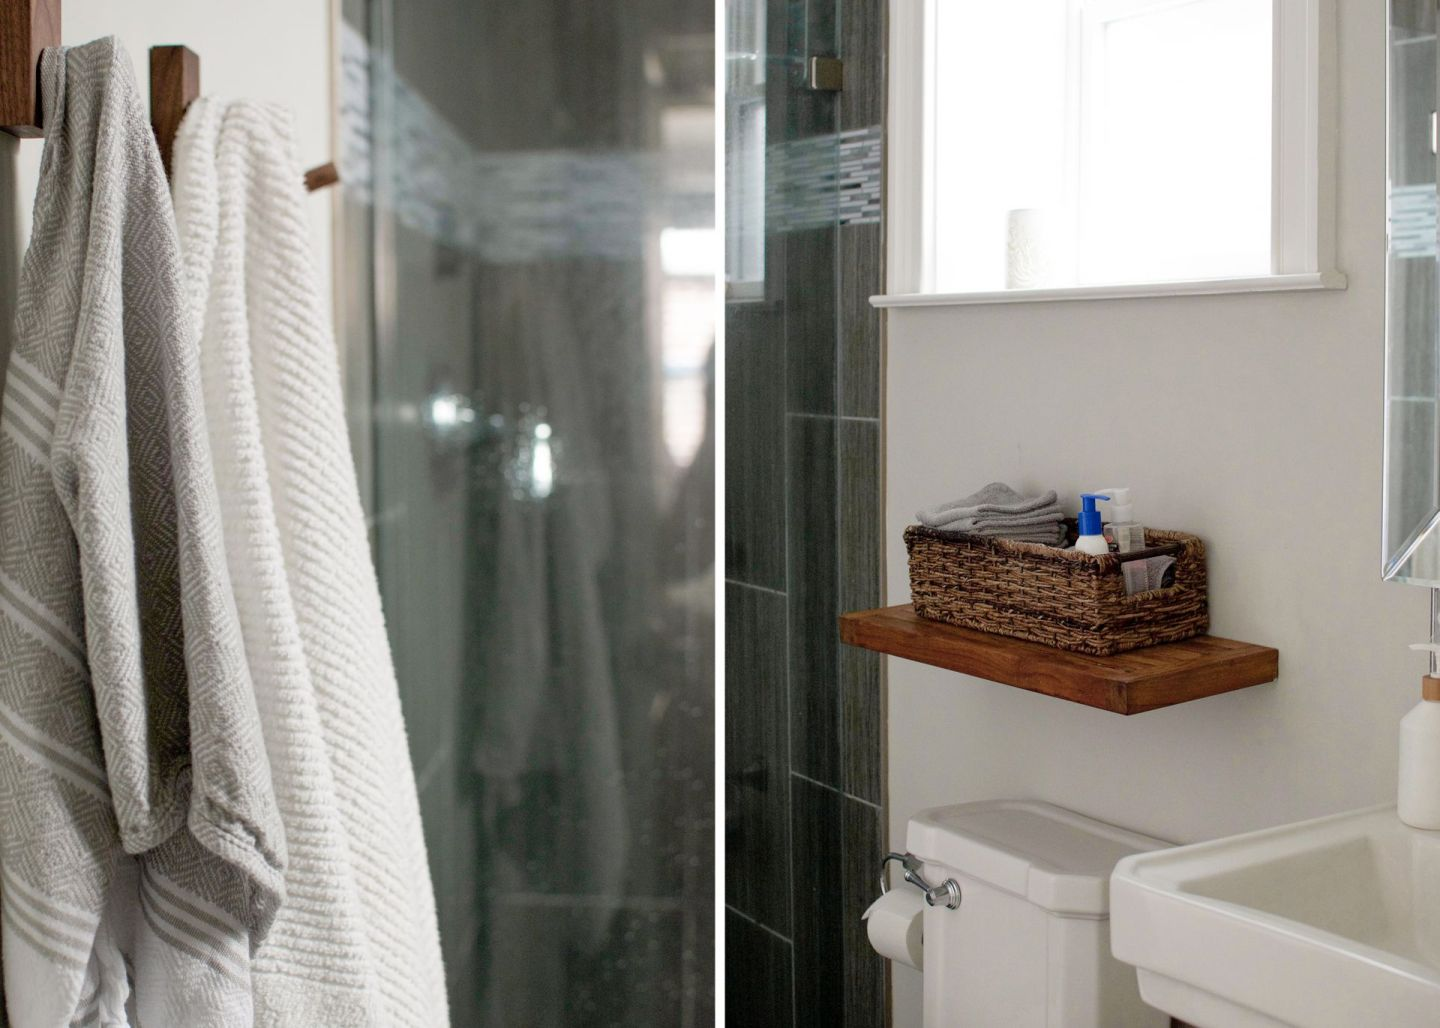 spa into bathroom - wooden bathroom hooks - spa bathroom - spa bathroom on a budget -diy bathroom hacks